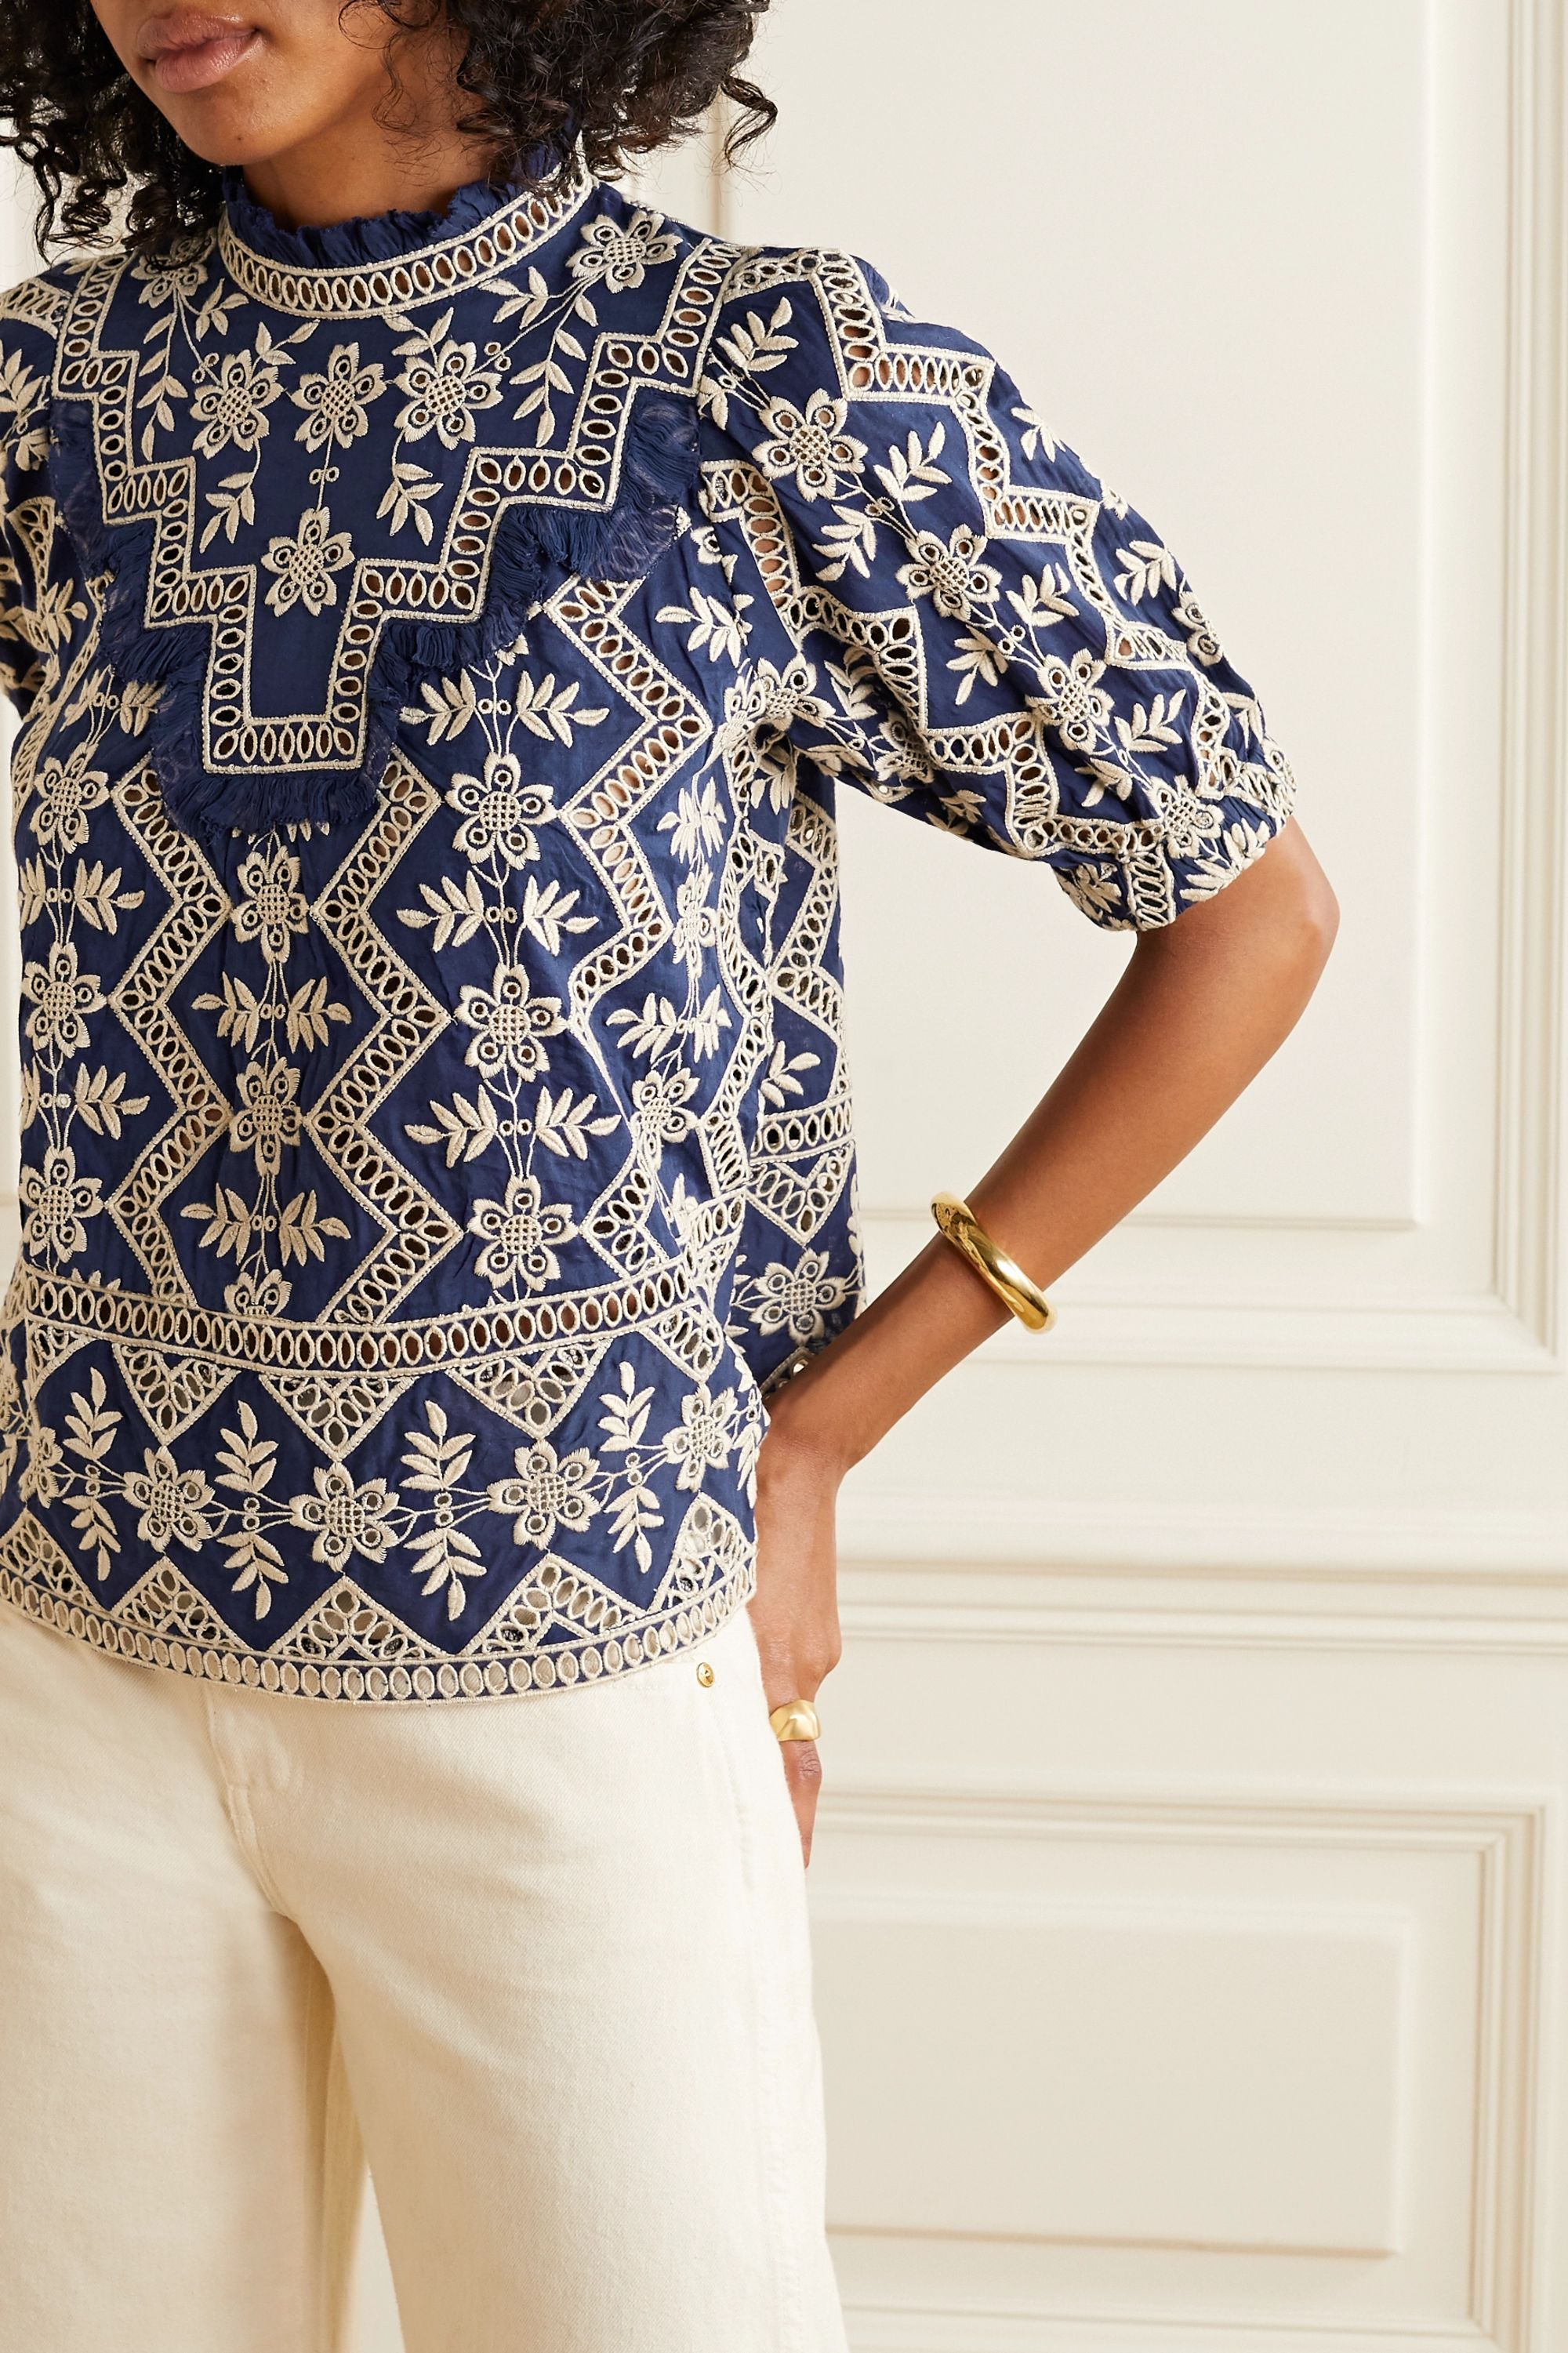 Sea Zippy broderie anglaise cotton top